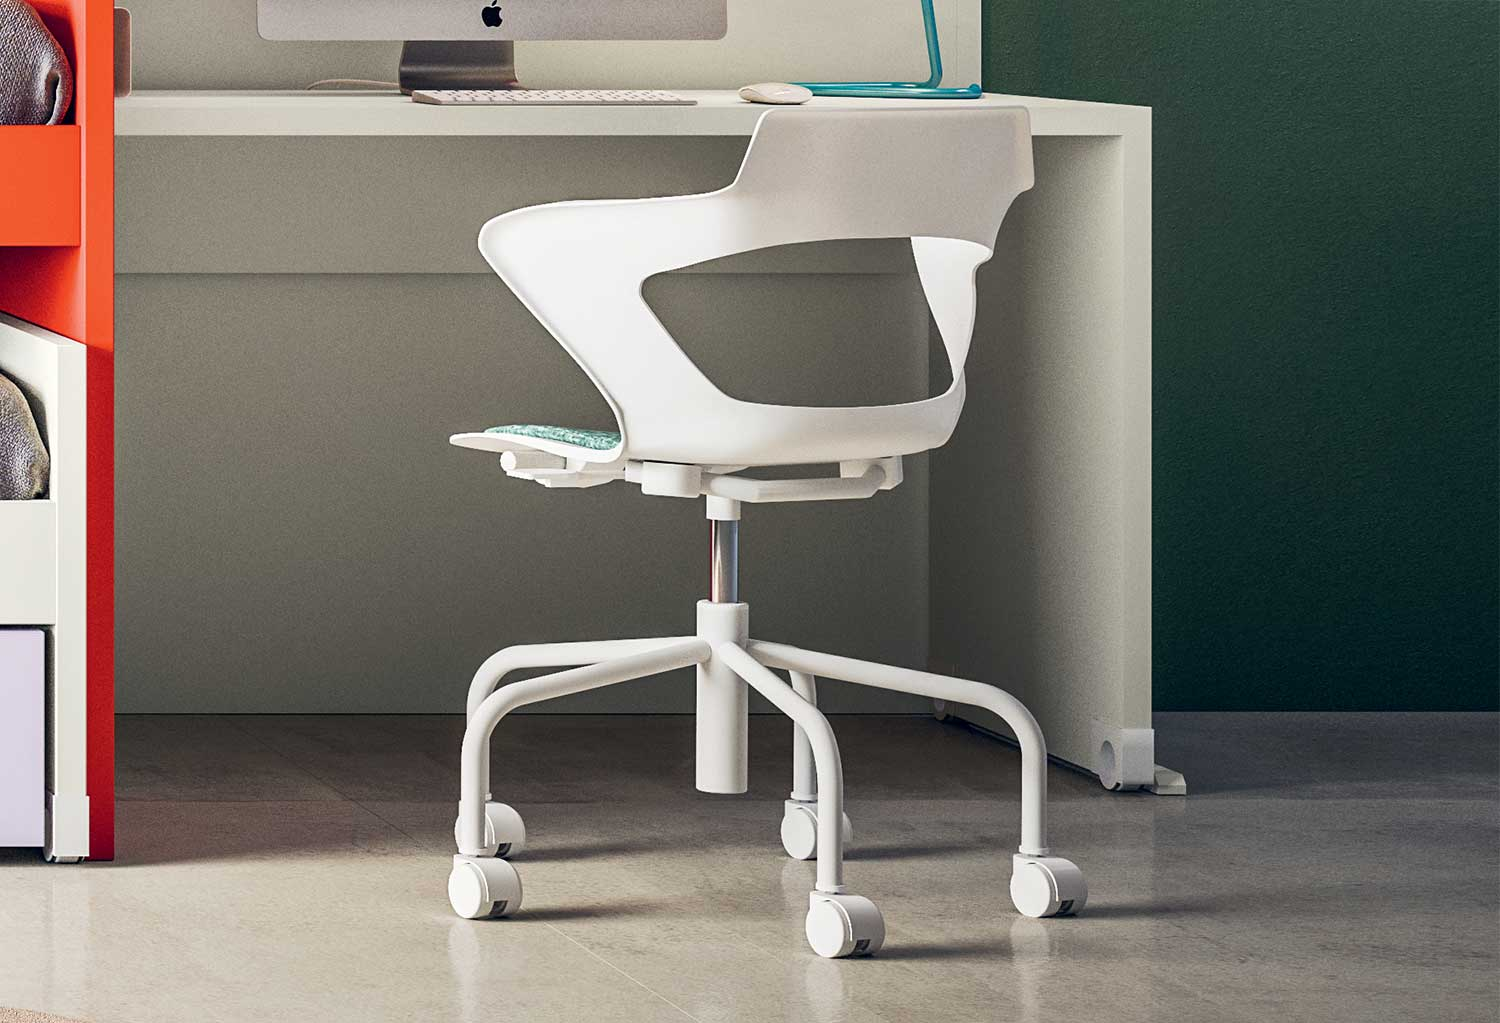 Desk swivel chair Polka has a cool contemporary design